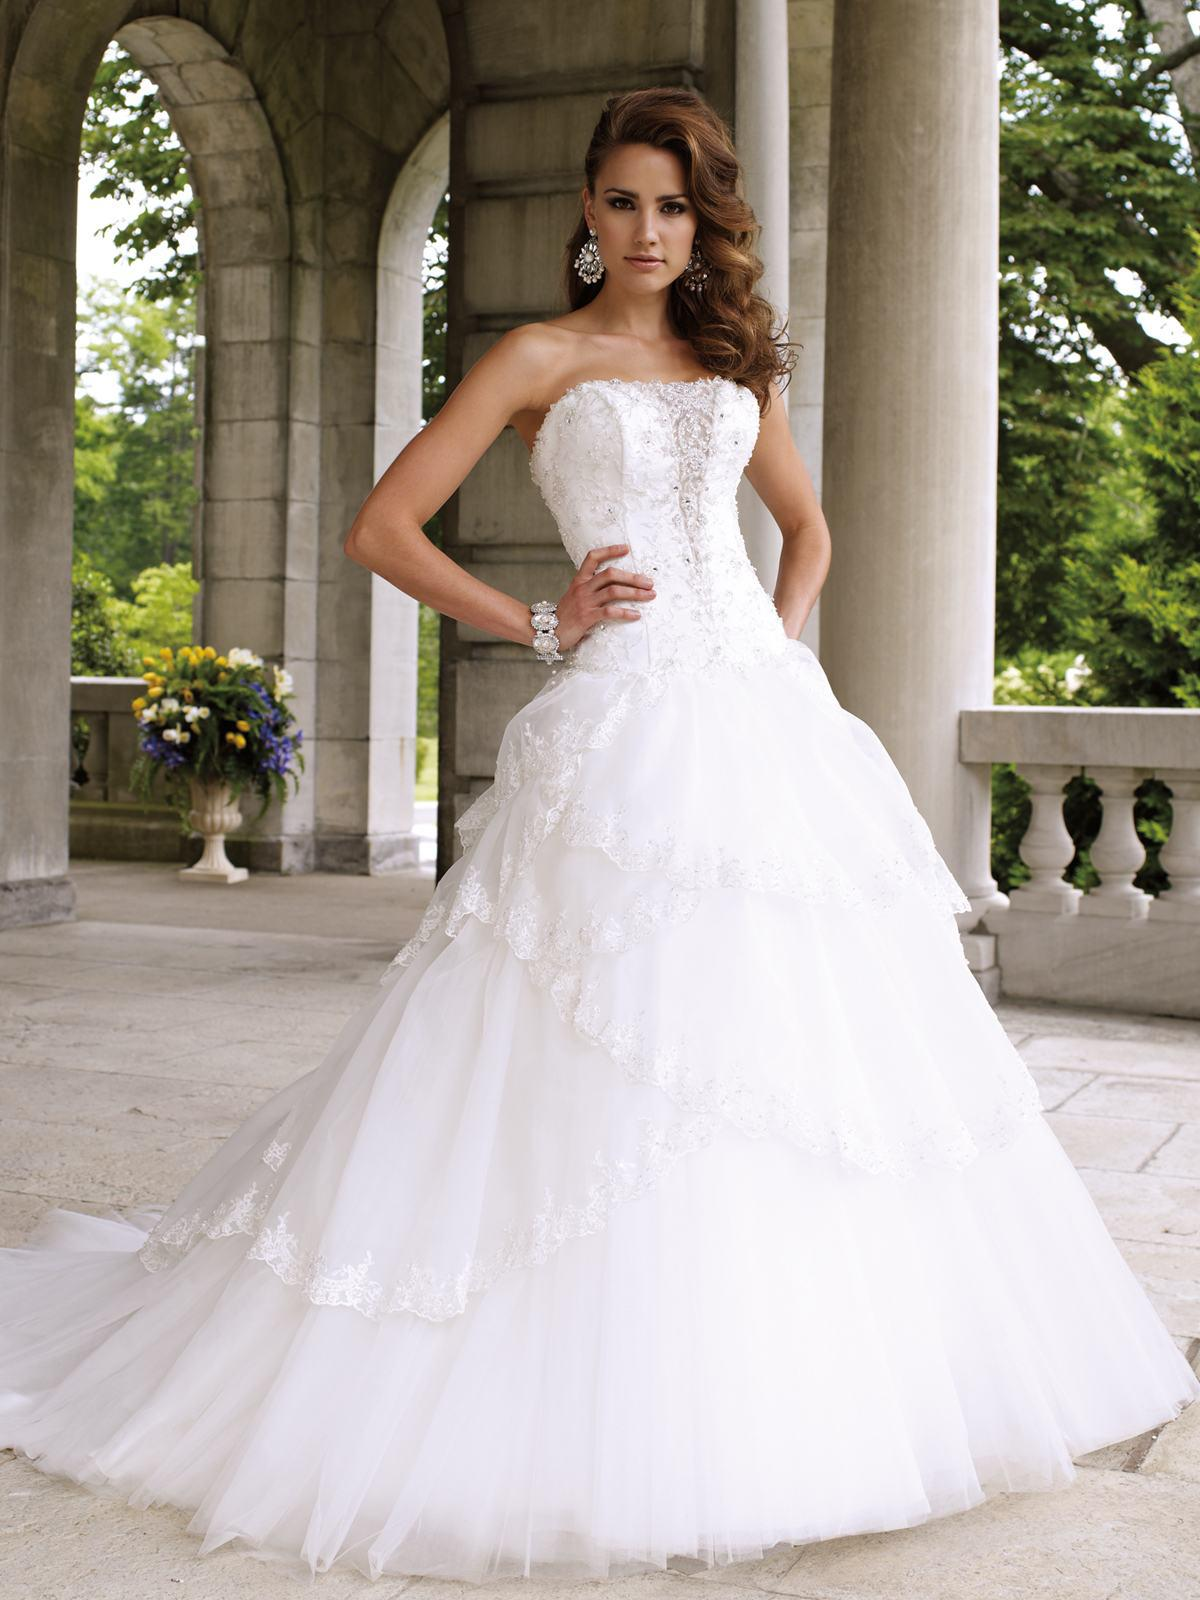 2013 sexy ball gown garden wedding dresses strapless appliques court train charming bridal gowns. Black Bedroom Furniture Sets. Home Design Ideas